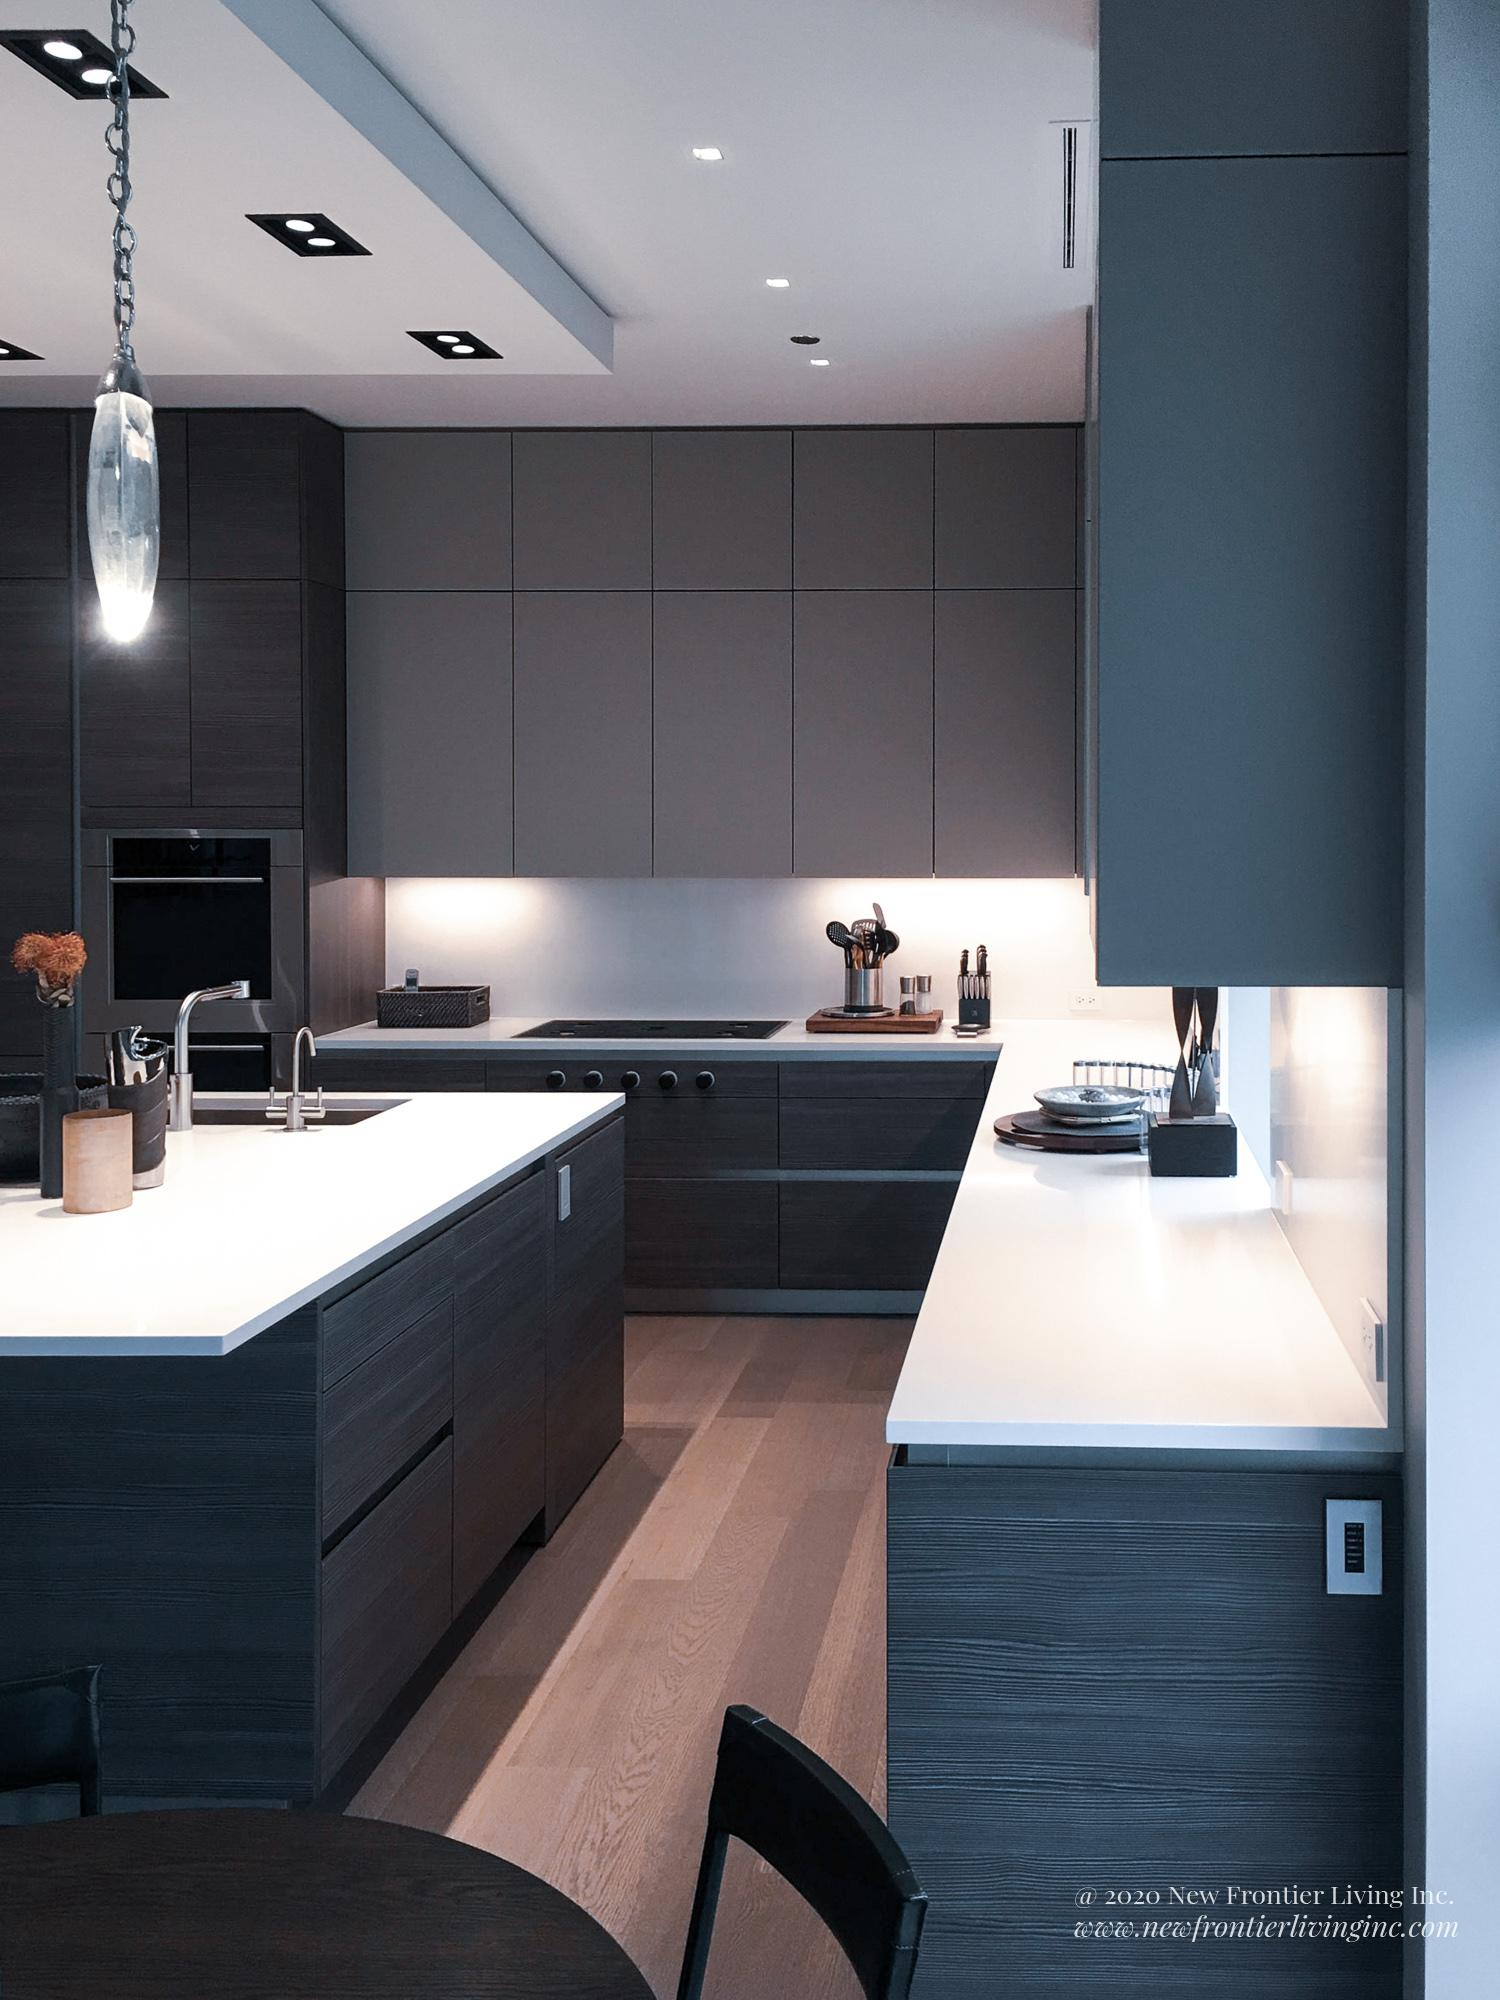 Black kitchen cabinetry and white countertop